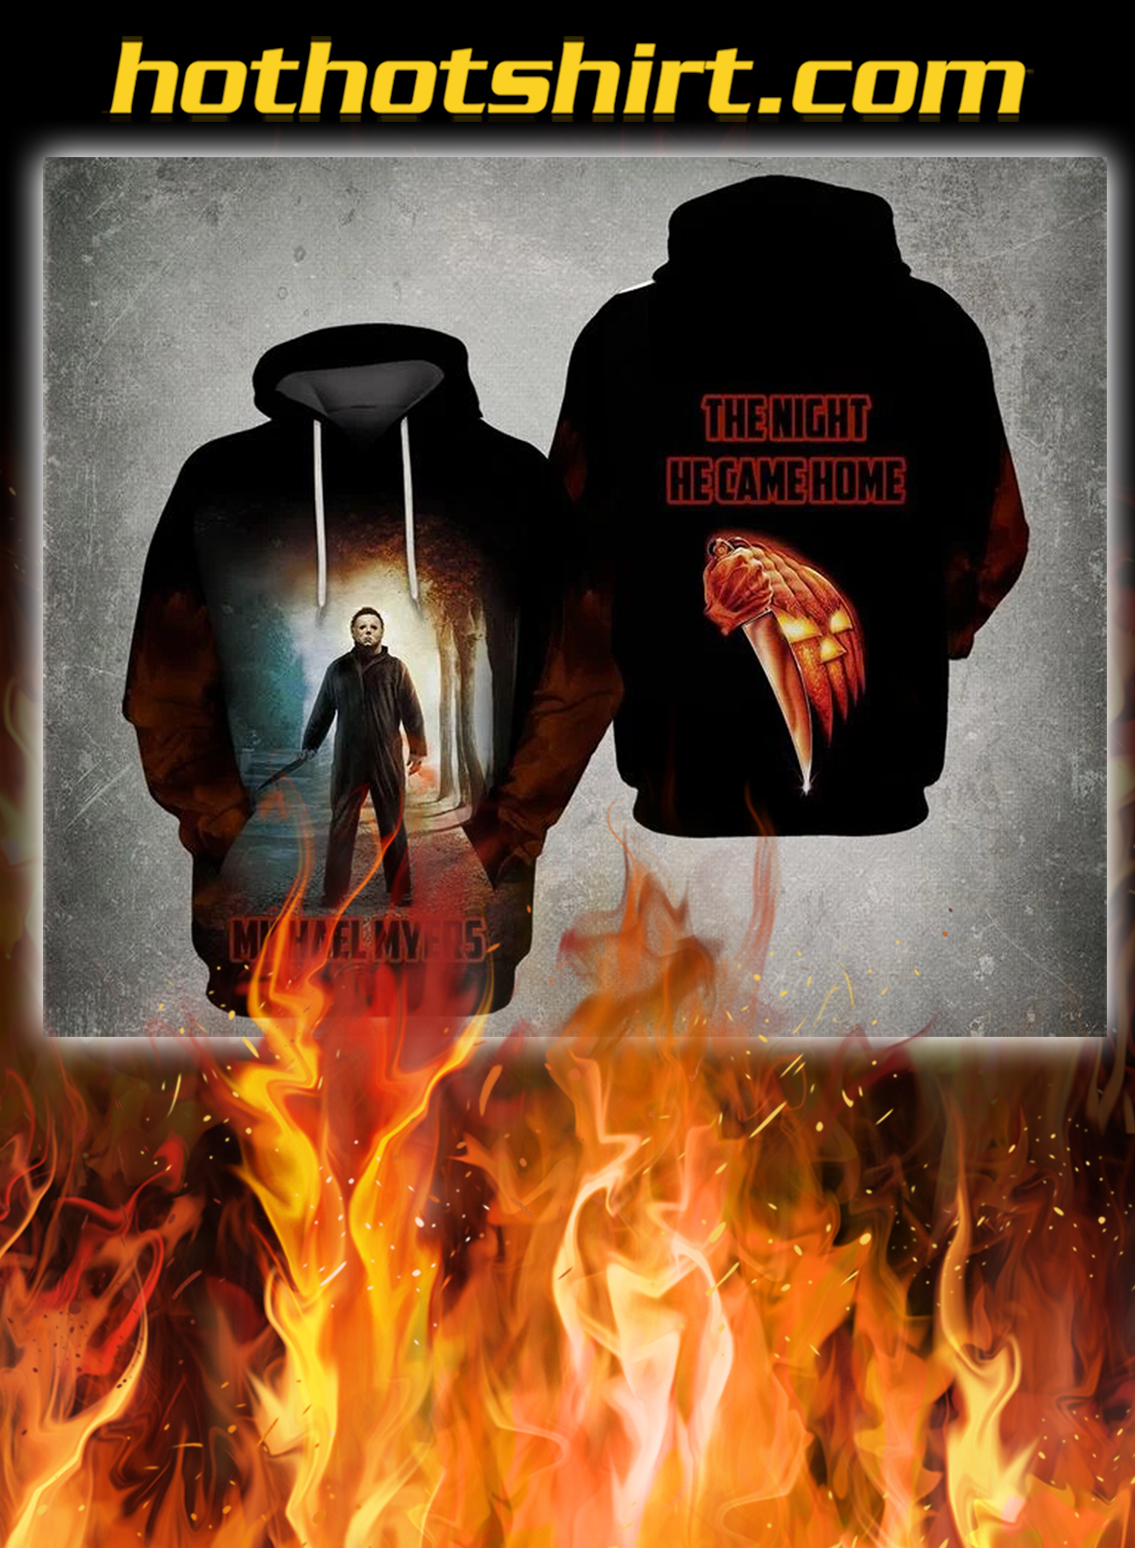 Michael myers the night he came home 3d all over print hoodie - S